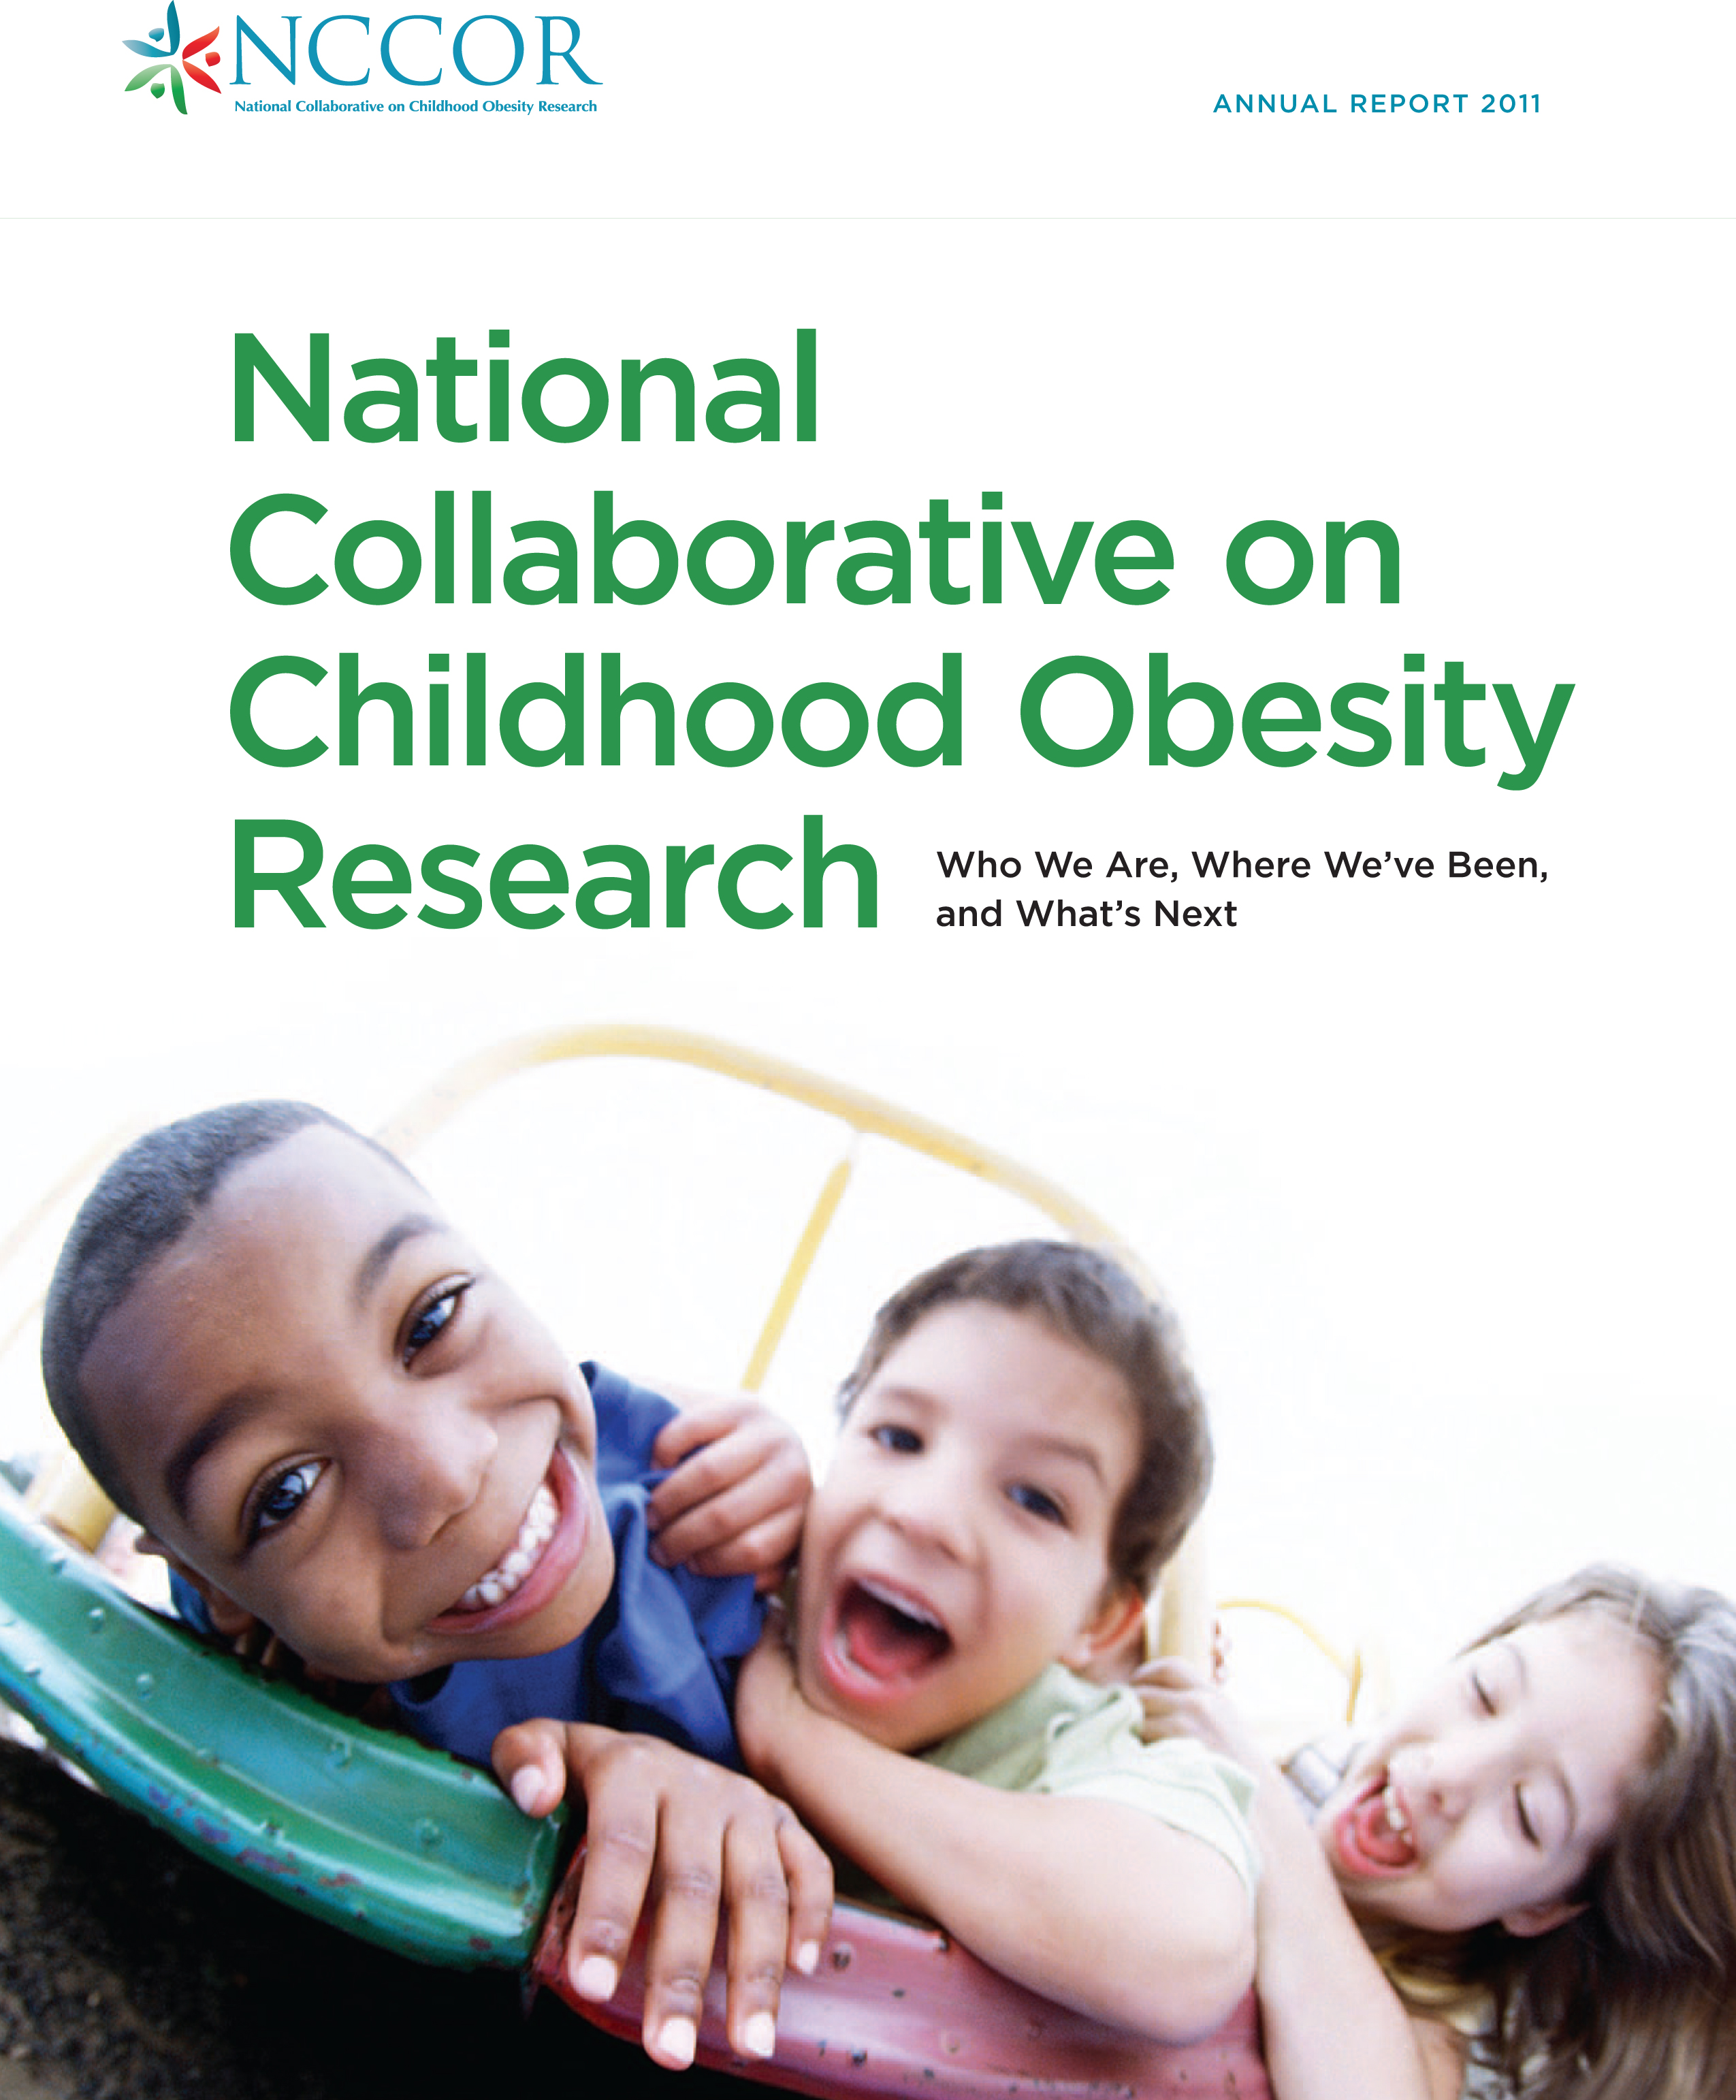 National Collaborative on Childhood Obesity Research (NCCOR): Annual Report 2011